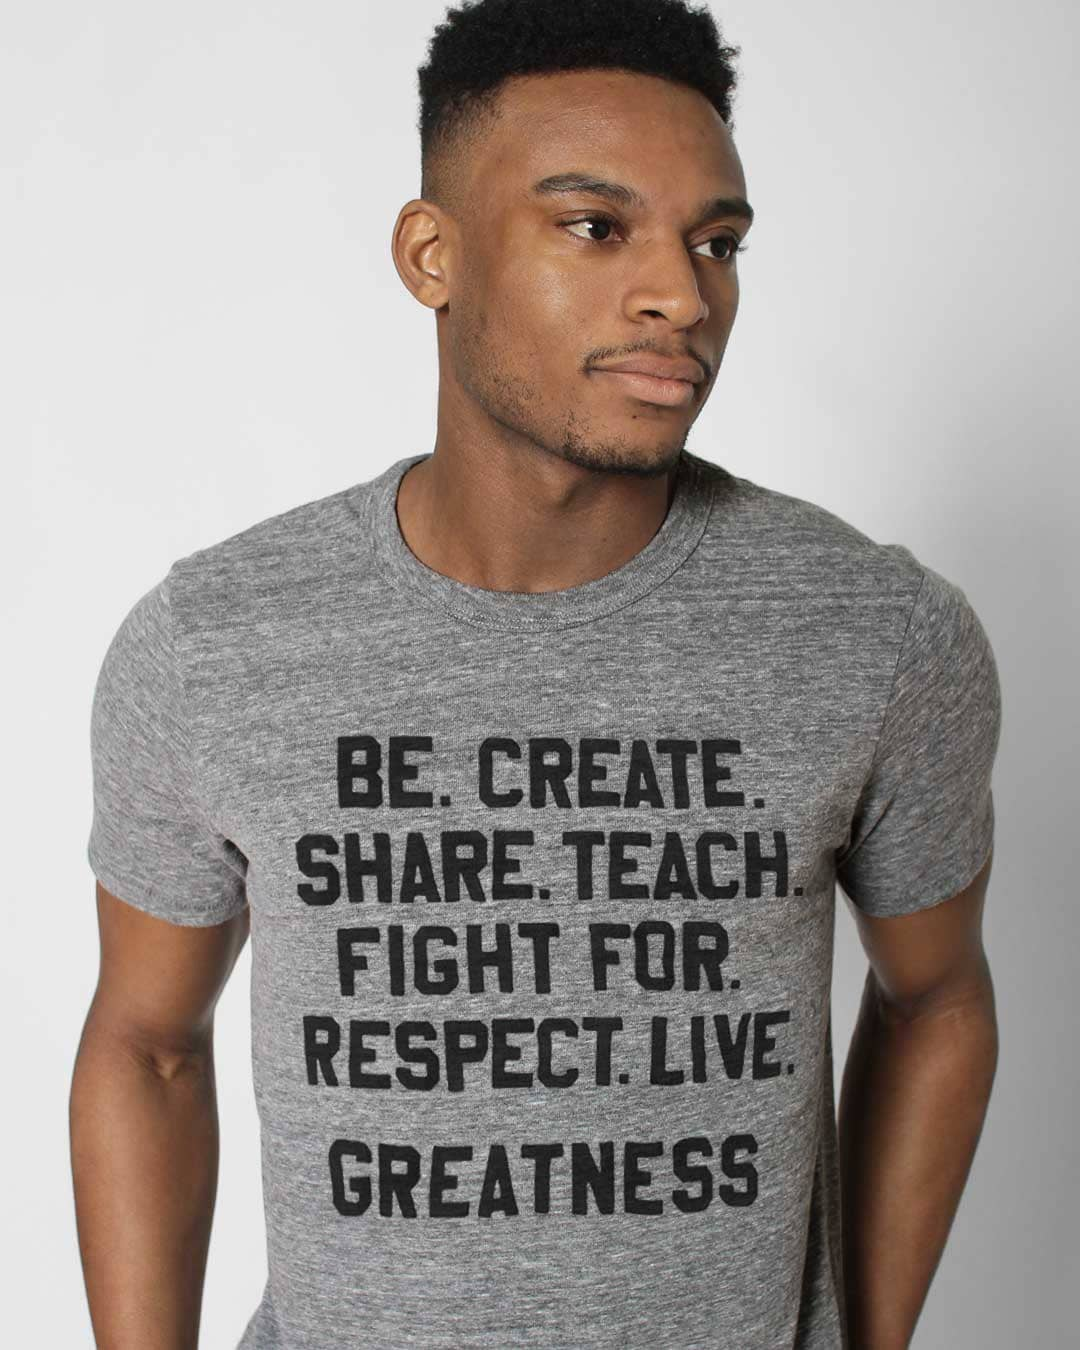 BHT - Roots of Fight Greatness Tee - Roots of Inc dba Roots of Fight